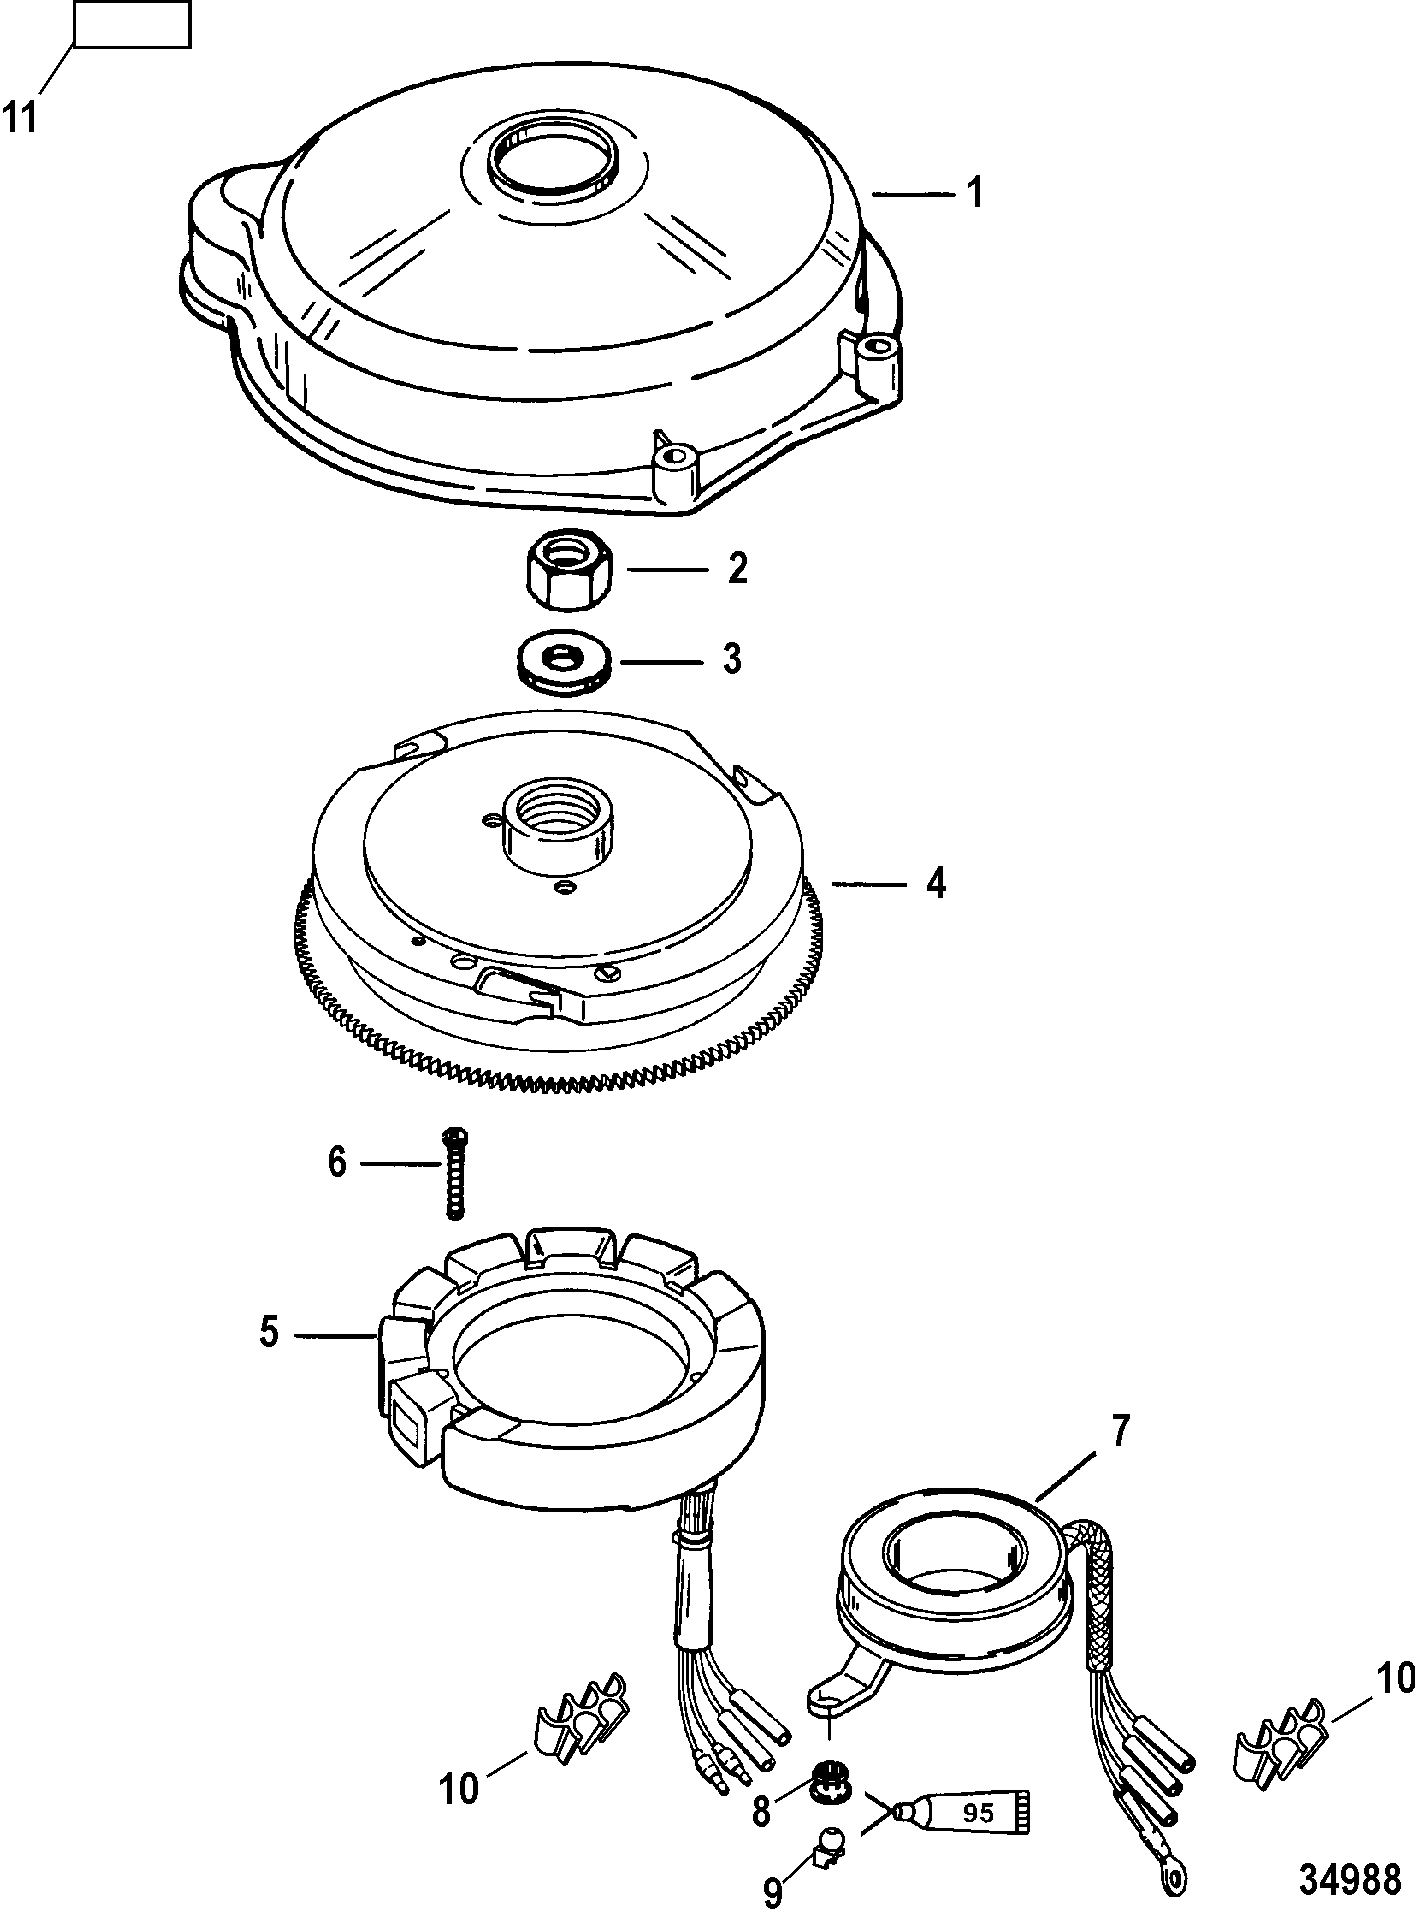 Mercury 40 Jet 0t980000 Up Diagram Of 8 2 Cyl2strokeinternational Outboard Flywheel And Stator Electric